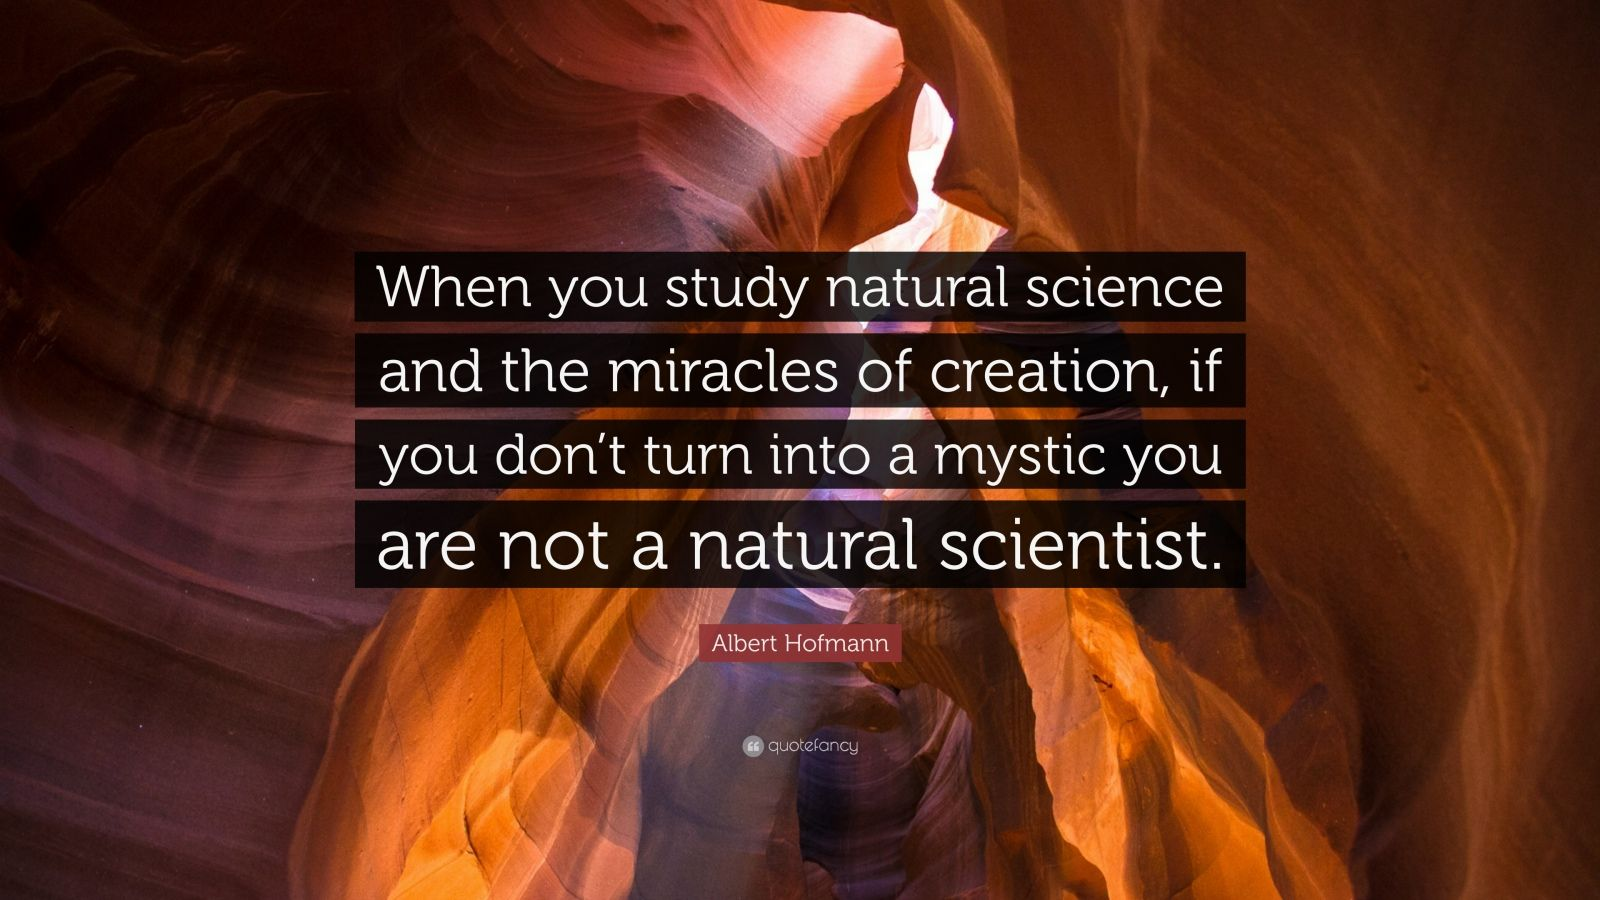 """Albert Hofmann Quote: """"When you study natural science and the miracles of creation, if you don't turn into a mystic you are not a natural scientist."""""""